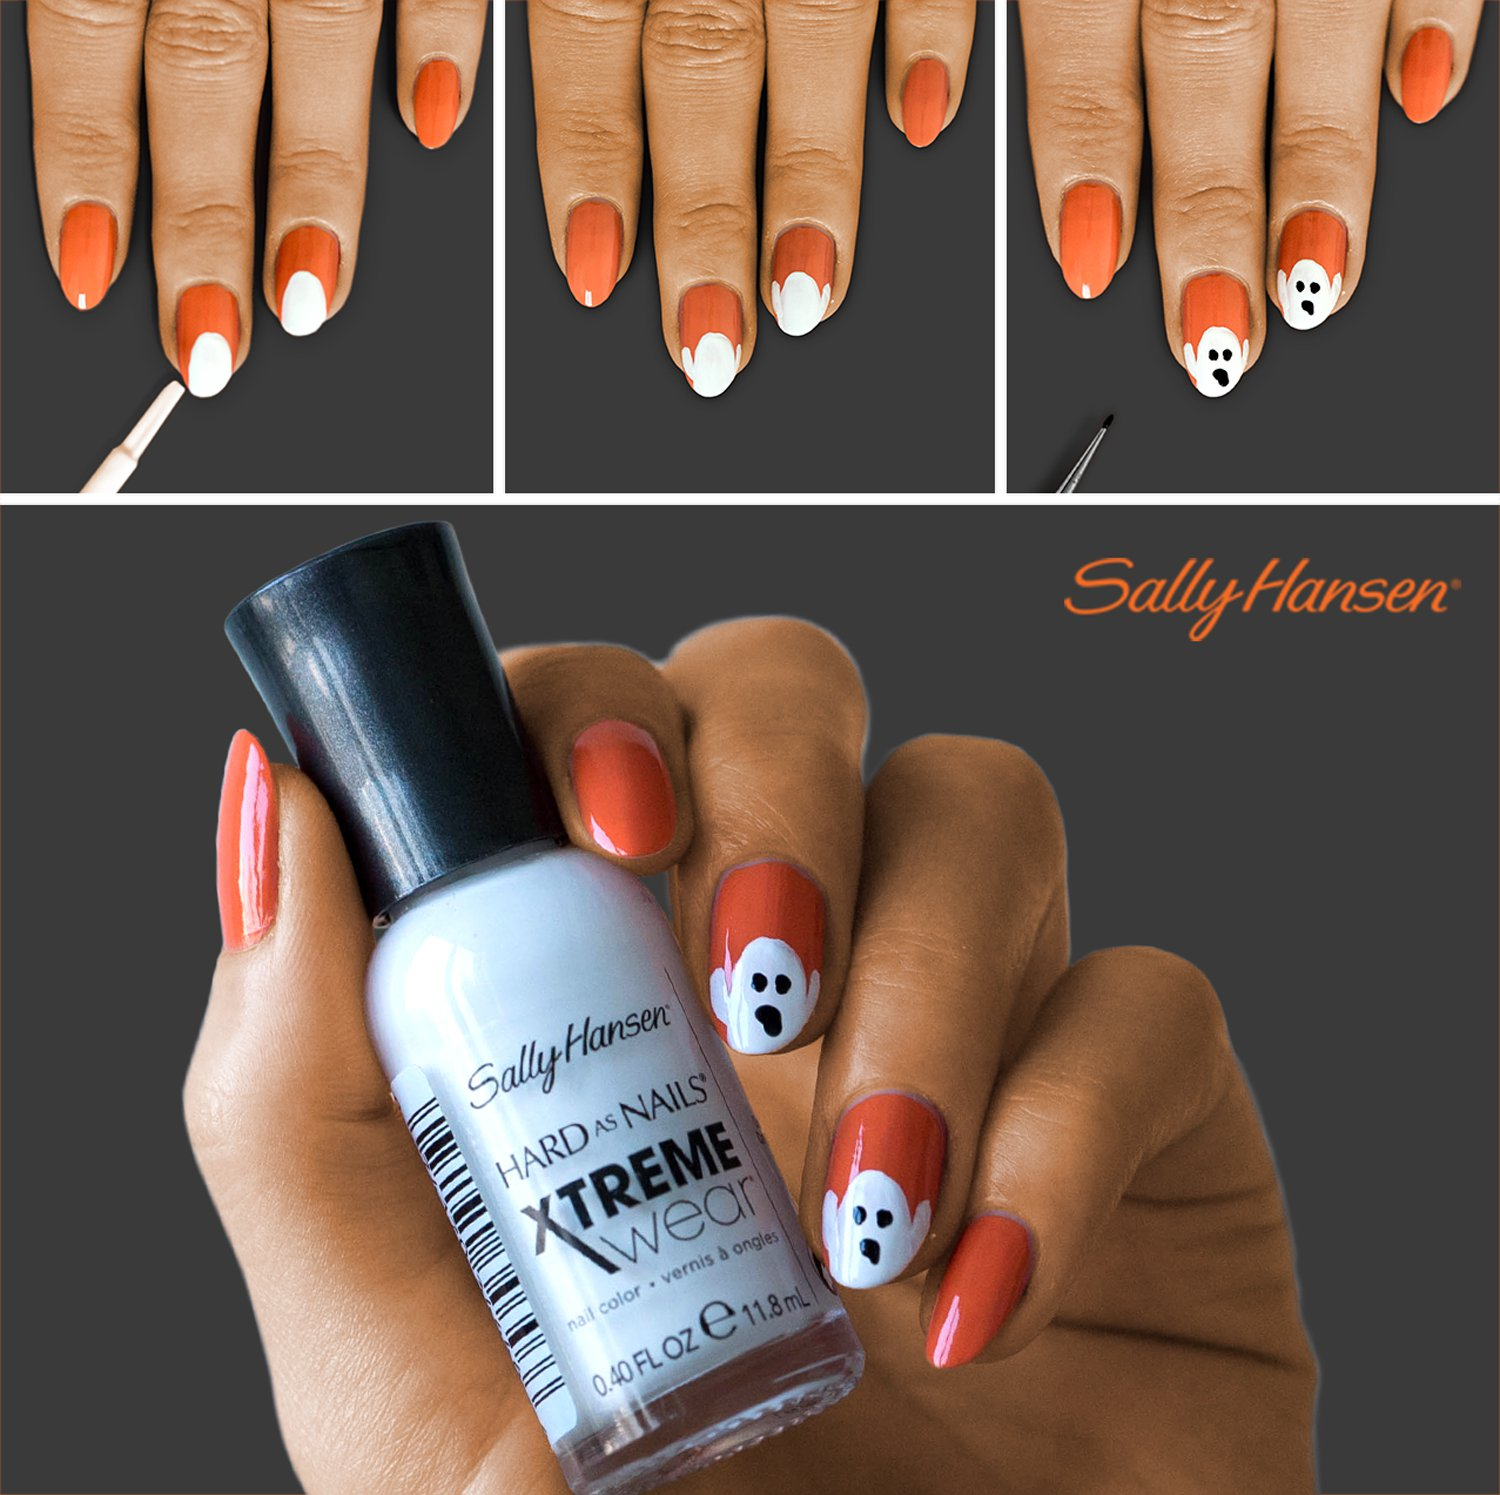 8ea817d6315b5aa1_Sally_Hansen_-_Halloween_nail_art_group